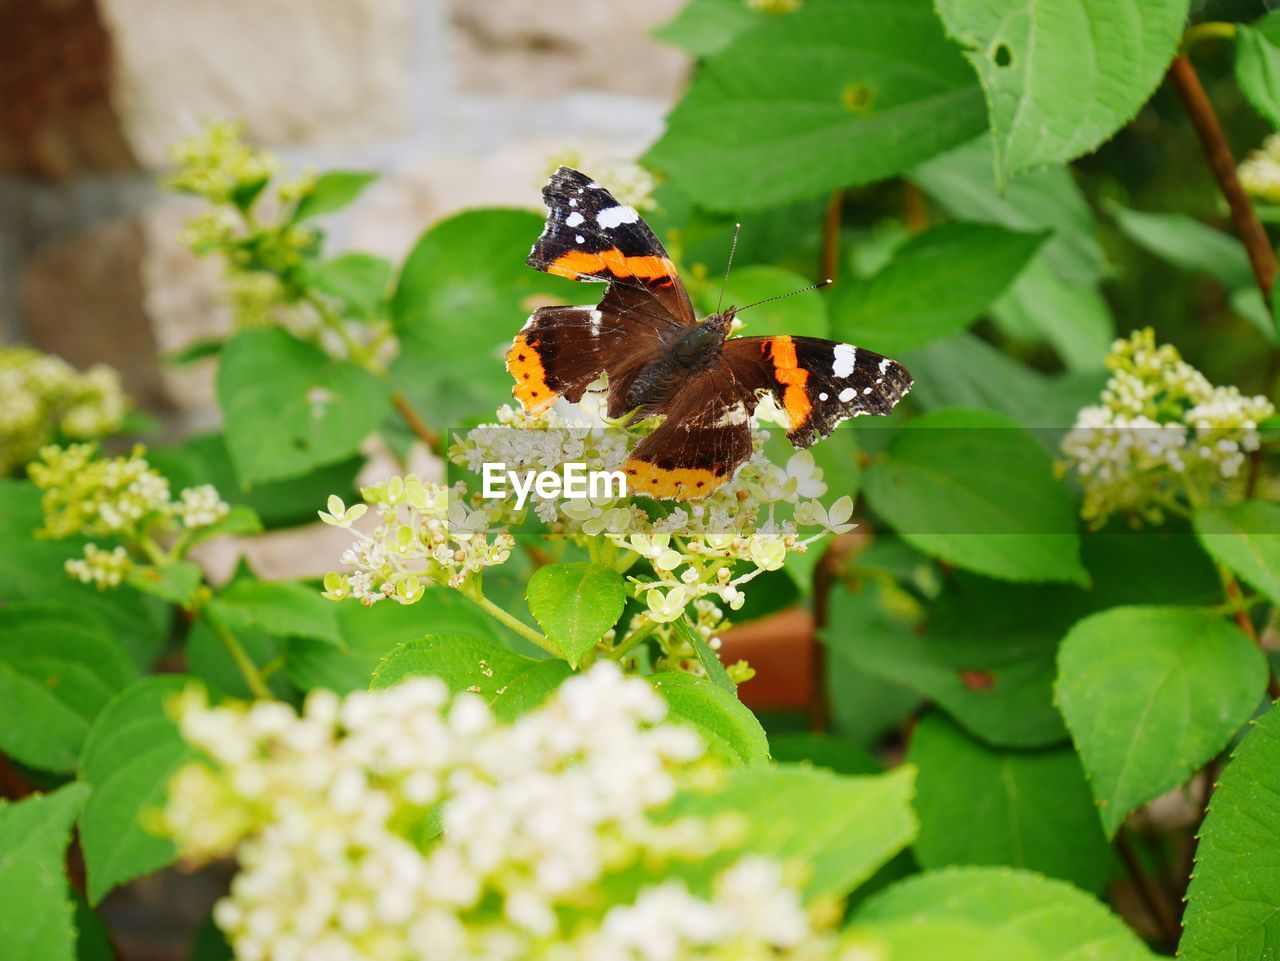 flower, animal themes, flowering plant, animal wildlife, animal, animals in the wild, one animal, plant, invertebrate, insect, beauty in nature, growth, vulnerability, fragility, plant part, leaf, freshness, green color, flower head, close-up, pollination, butterfly - insect, animal wing, no people, lantana